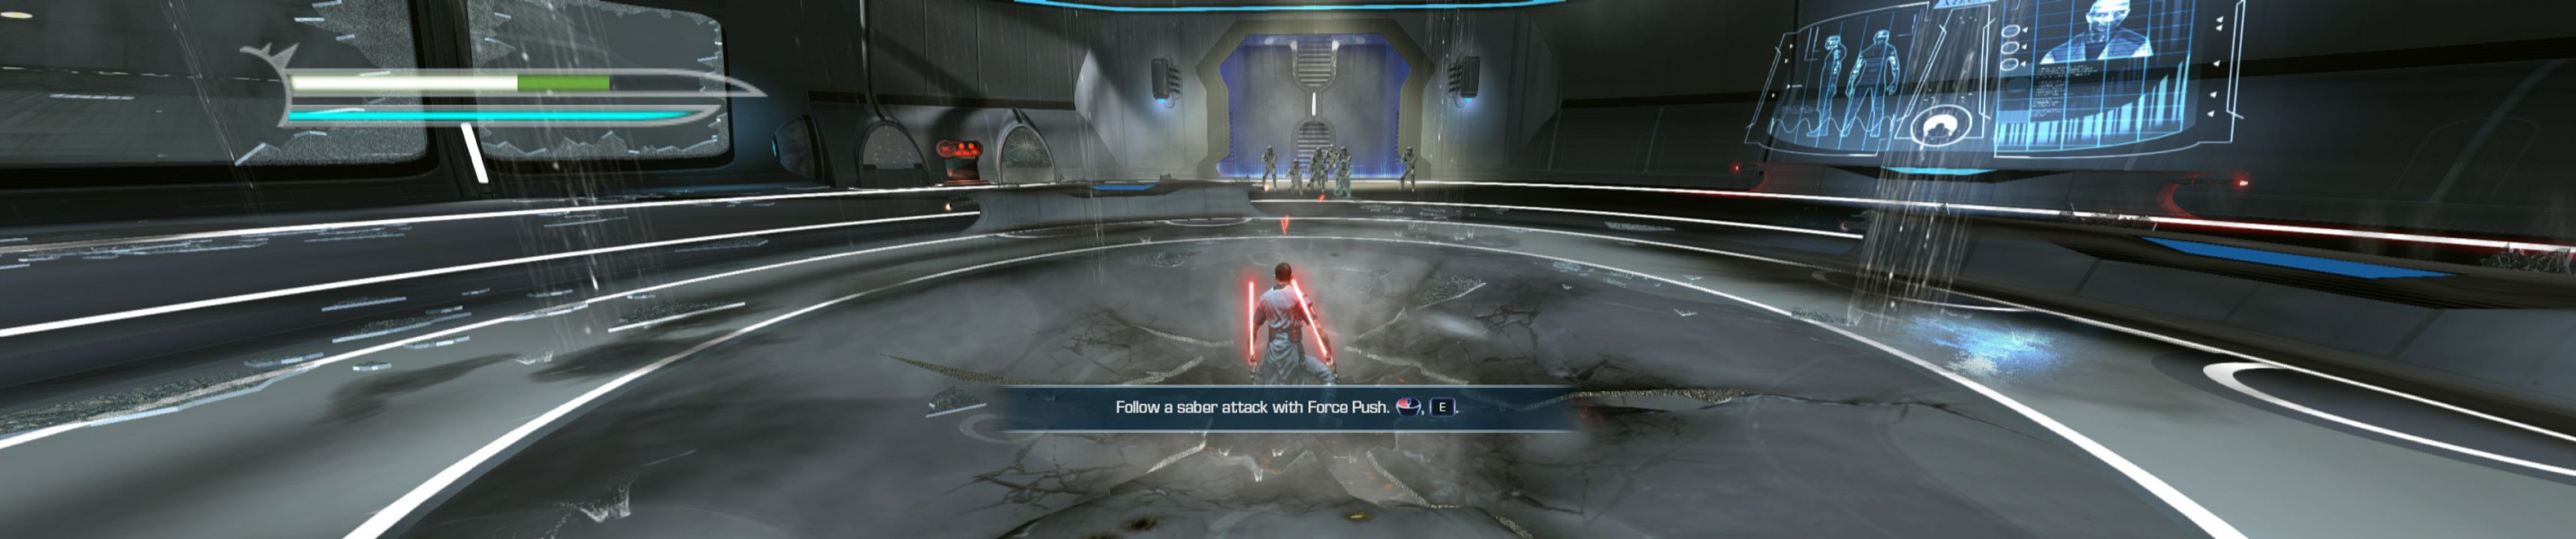 Star Wars: The Force Unleashed - Wikipedia